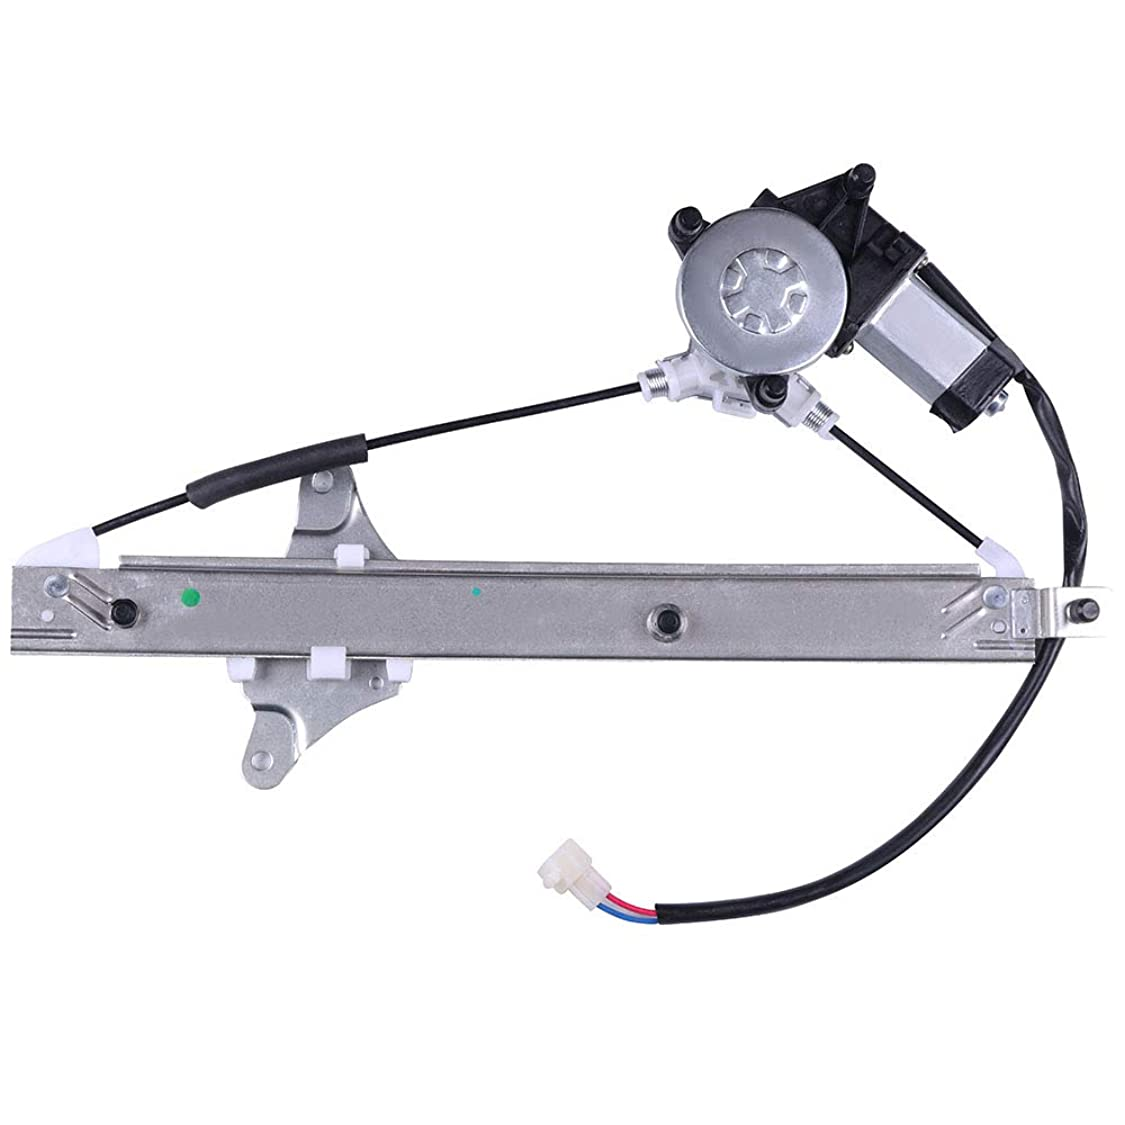 OCPTY Power Window Regulator with Motor Assembly Replacement Rear Left Drivers Side Window Regulator fit for 1992-1996 Toyota Camry Sedan 6984032090 741-794 sm57362935571109